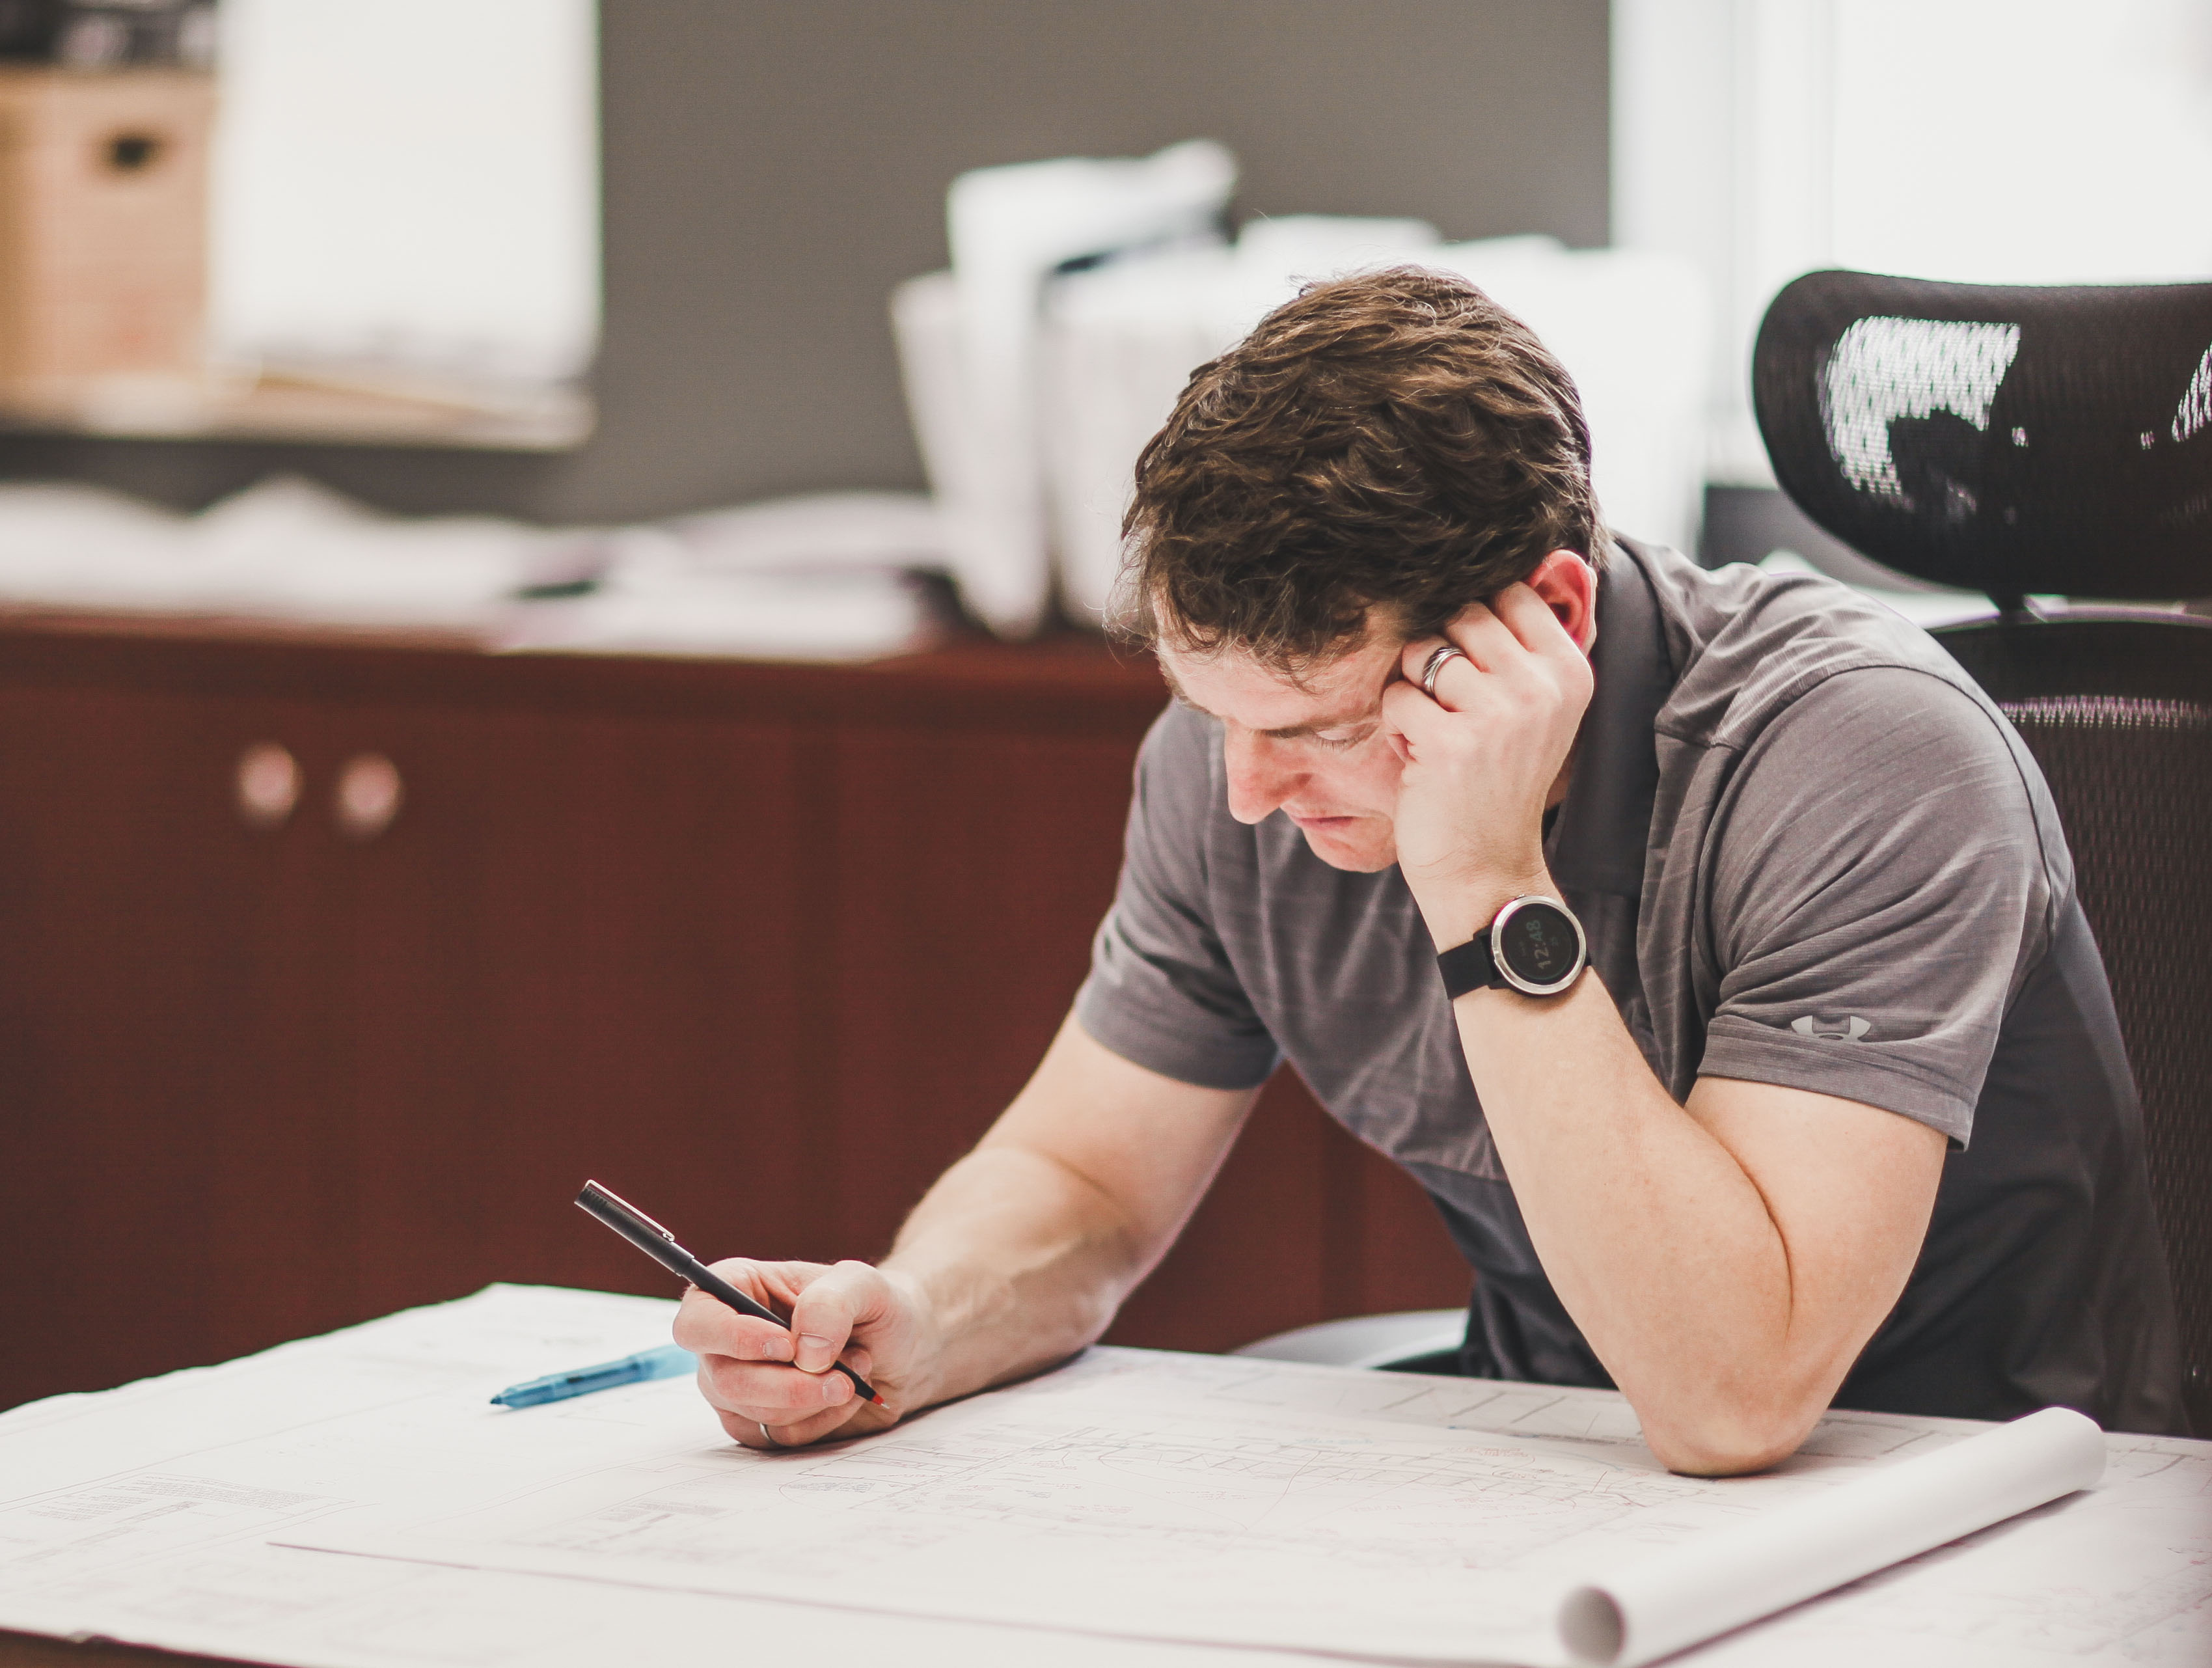 Photo of Greg Esdale working on engineering plans